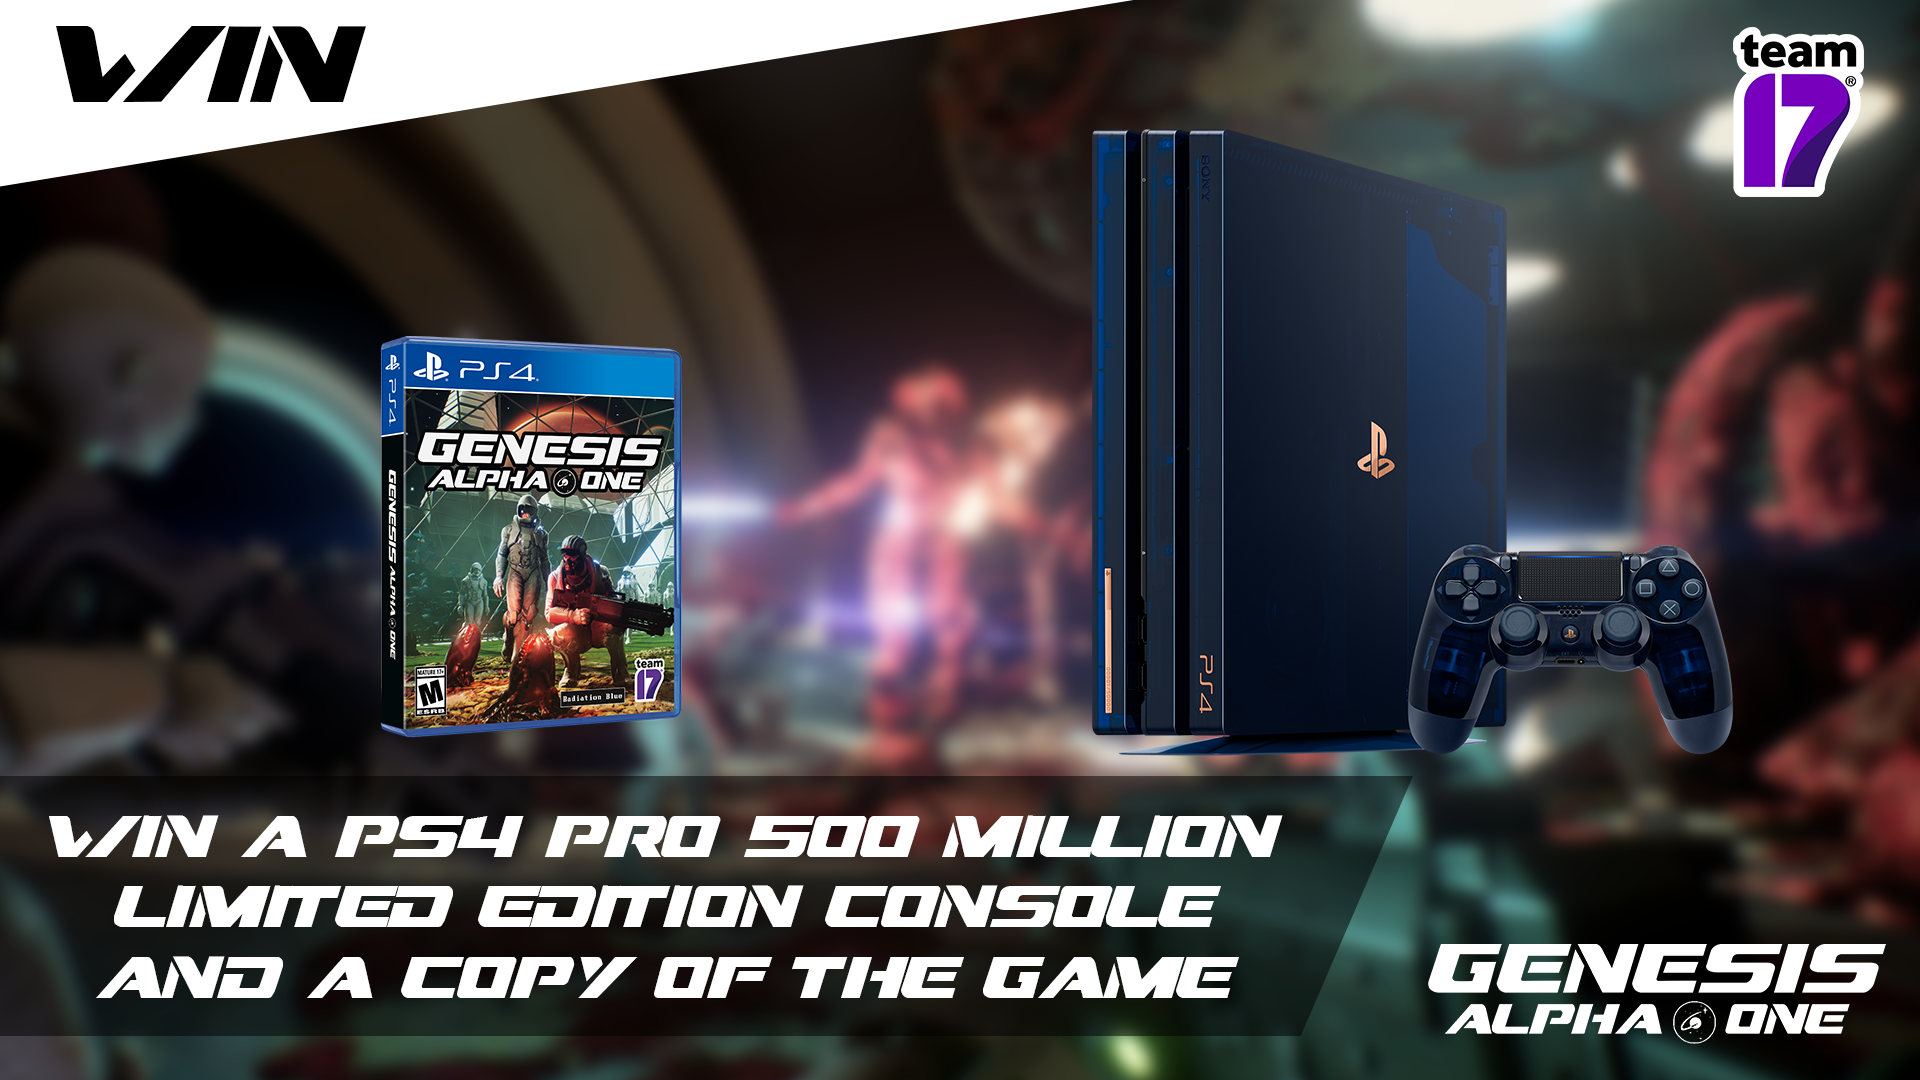 WIN a PS4 Pro 500 Million Limited Edition console and a copy of Genesis Alpha One!